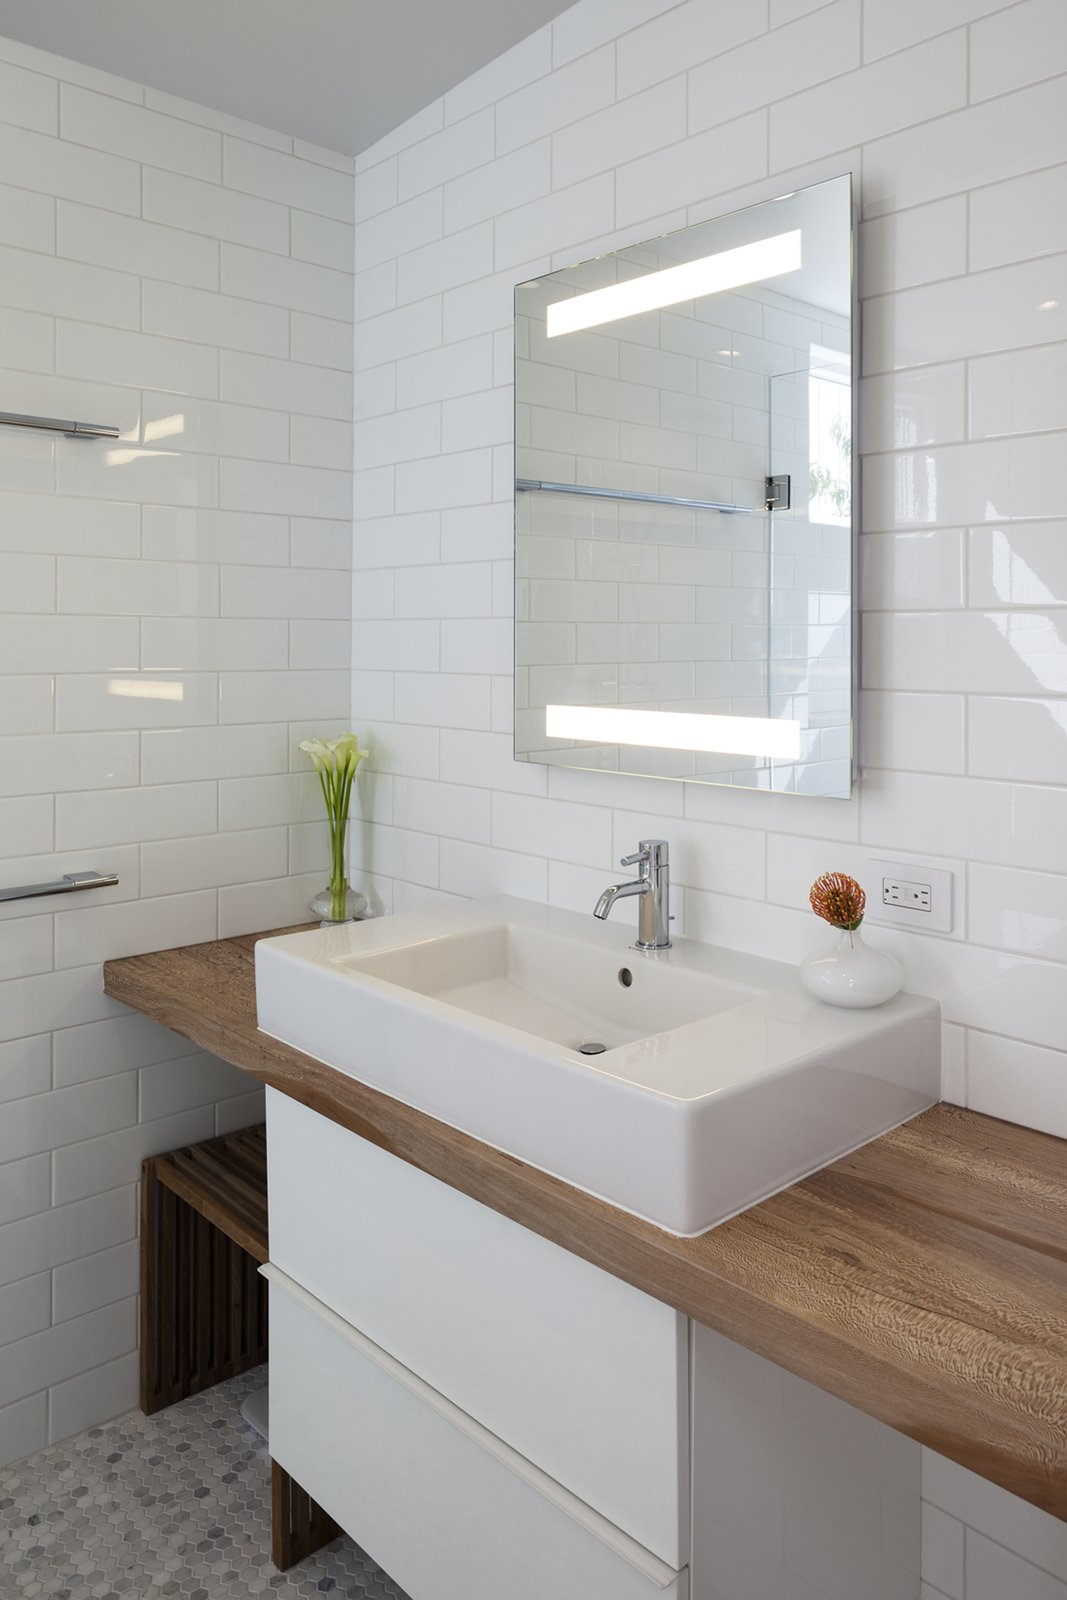 Tagged: Bath Room, Wood Counter, Accent Lighting, Vessel Sink, Ceramic Tile Floor, Subway Tile Wall, and Ceramic Tile Wall.  Shotwell Residence by Todd Davis Architecture